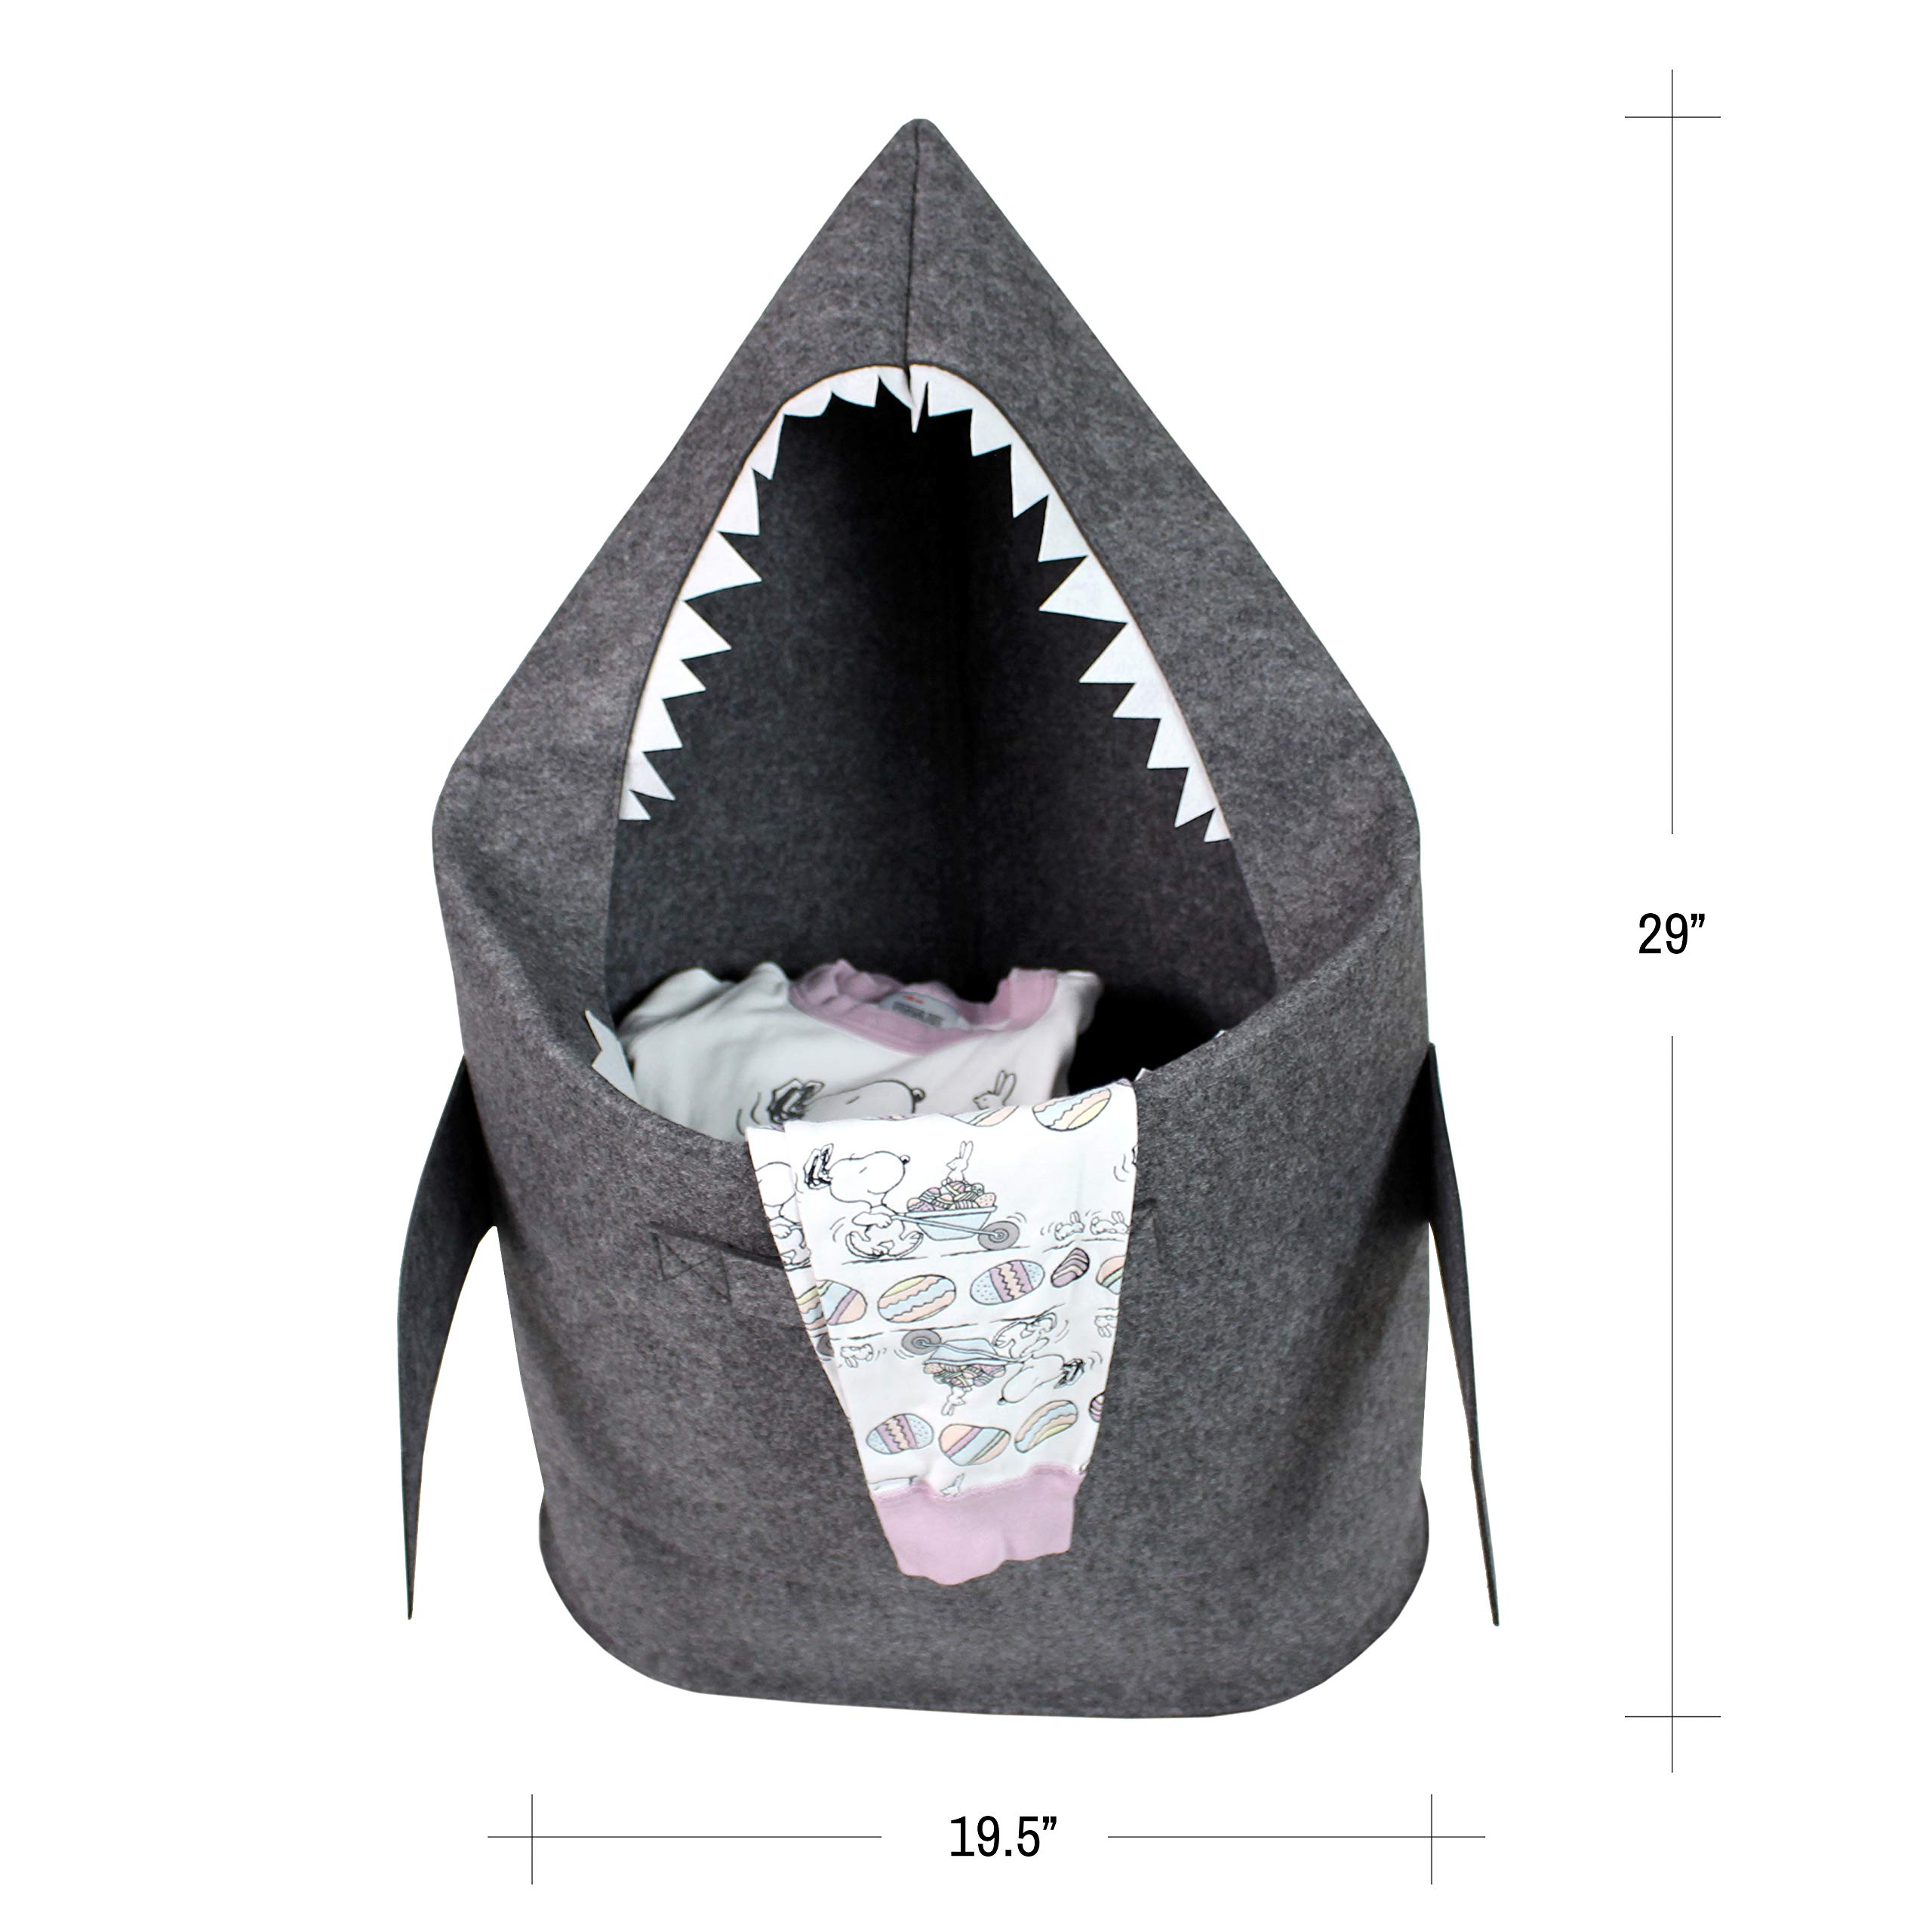 Bins & Things Shark Kids Laundry Hamper - Baby Clothes Nursery Basket with Handles - Real Shark Look with Teeth, Fins, Eyes